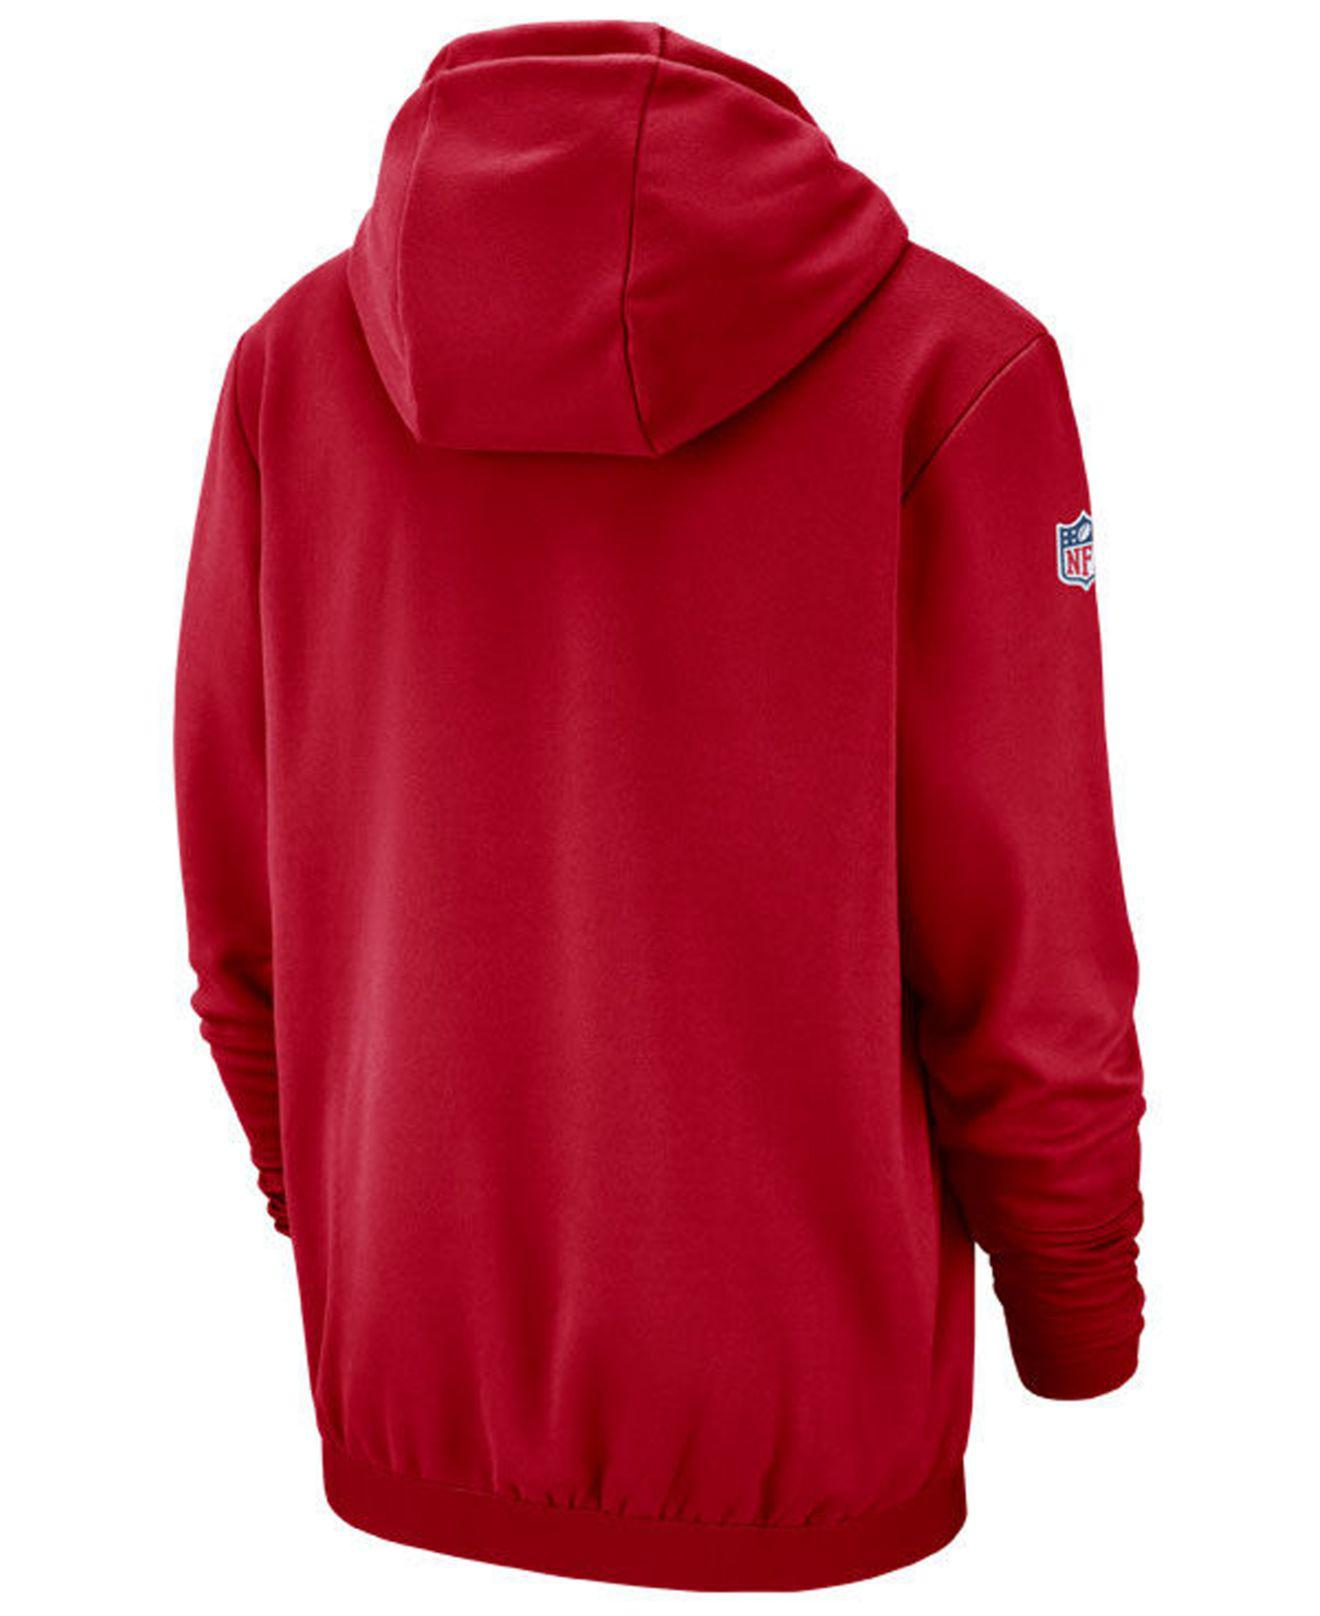 1dc30ca55 Lyst - Nike Tampa Bay Buccaneers Sideline Player Local Therma Hoodie in Red  for Men